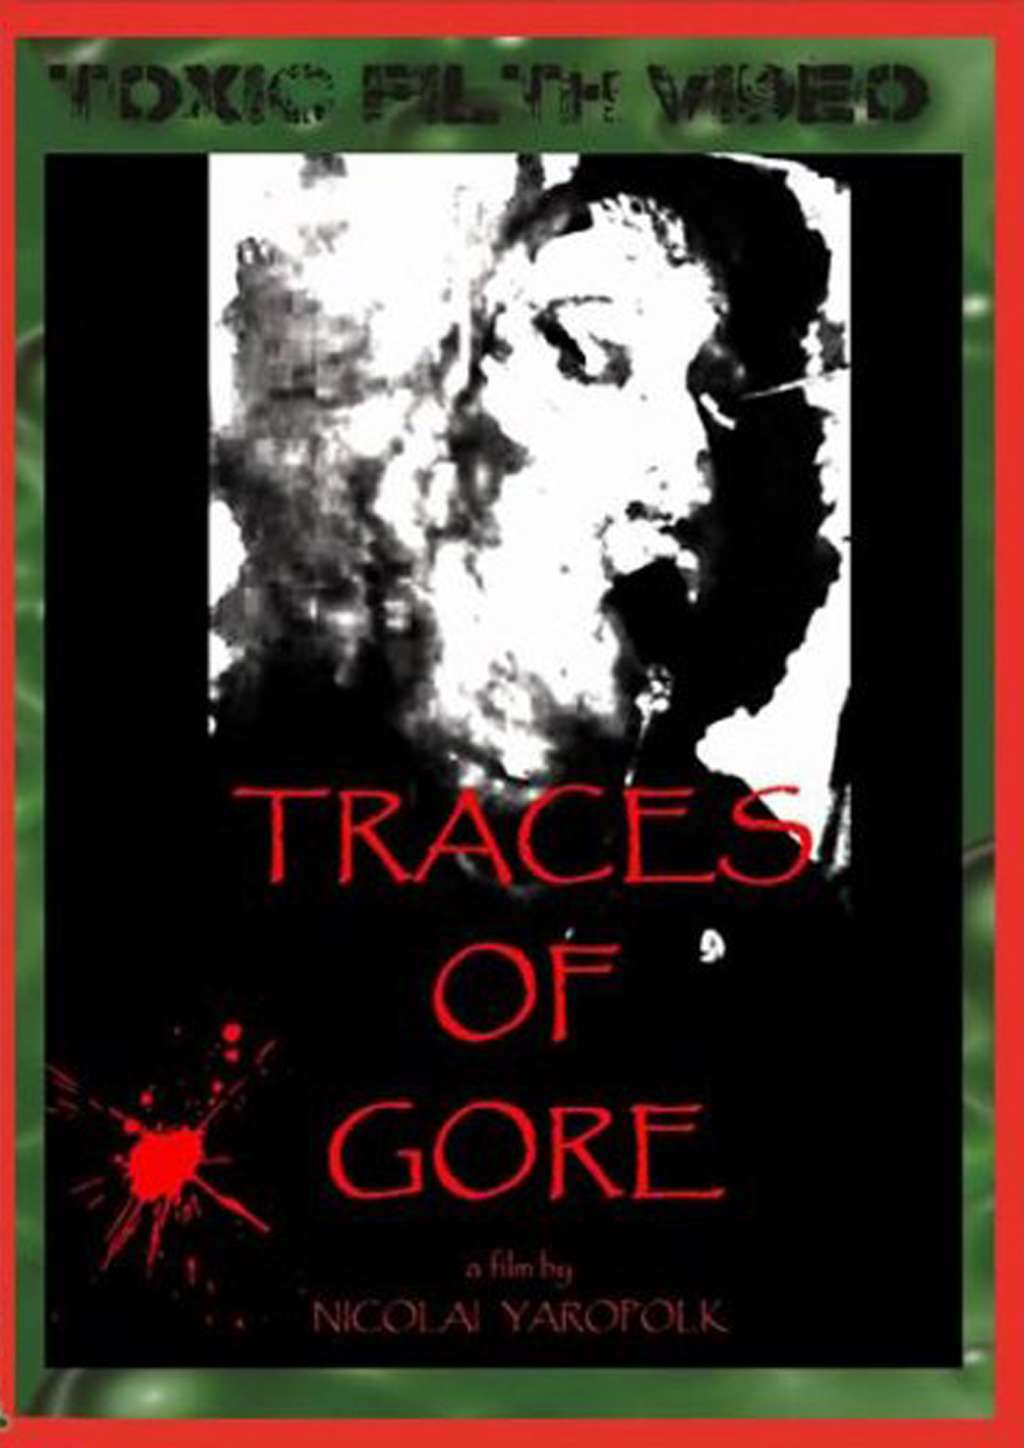 Traces of Gore kapak